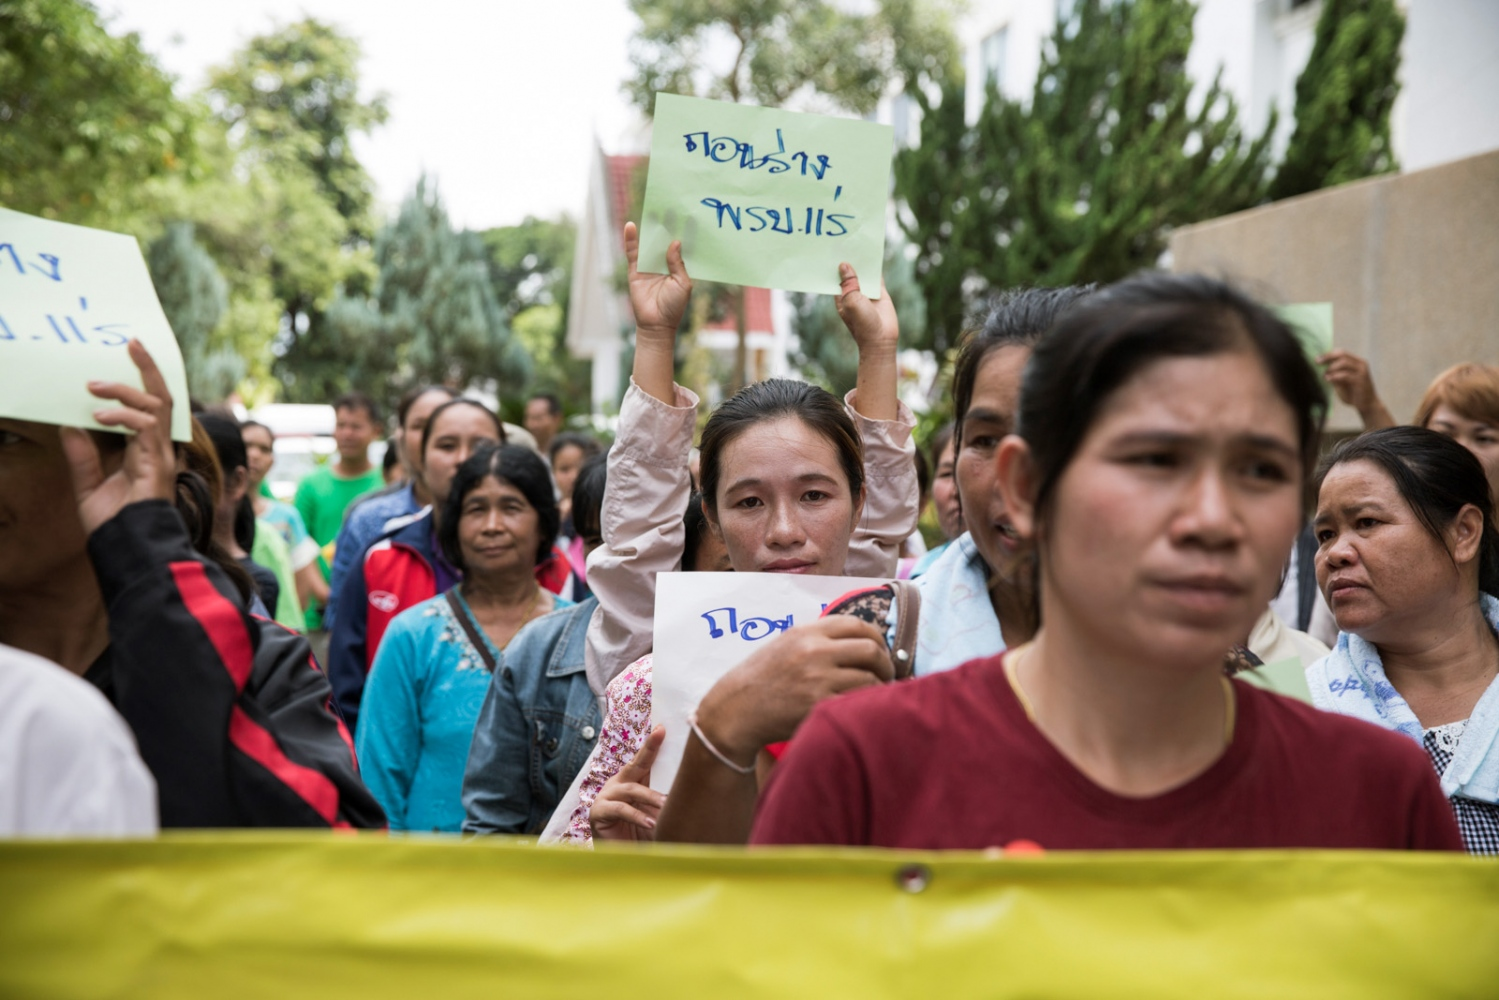 Women members of the Khon Rak Ban Kerd environmental group and the Rak Ban Han Naew Group, a community-based group of villagers from Pak Chom District opposing a coal mining project gather at City Hall in Loei city in July 2016. They are submitting a petition to oppose the drafted mining act which could restrict public participation in mining permissions and reduce the robust environmental safeguards which have to be approved before operating a mine.